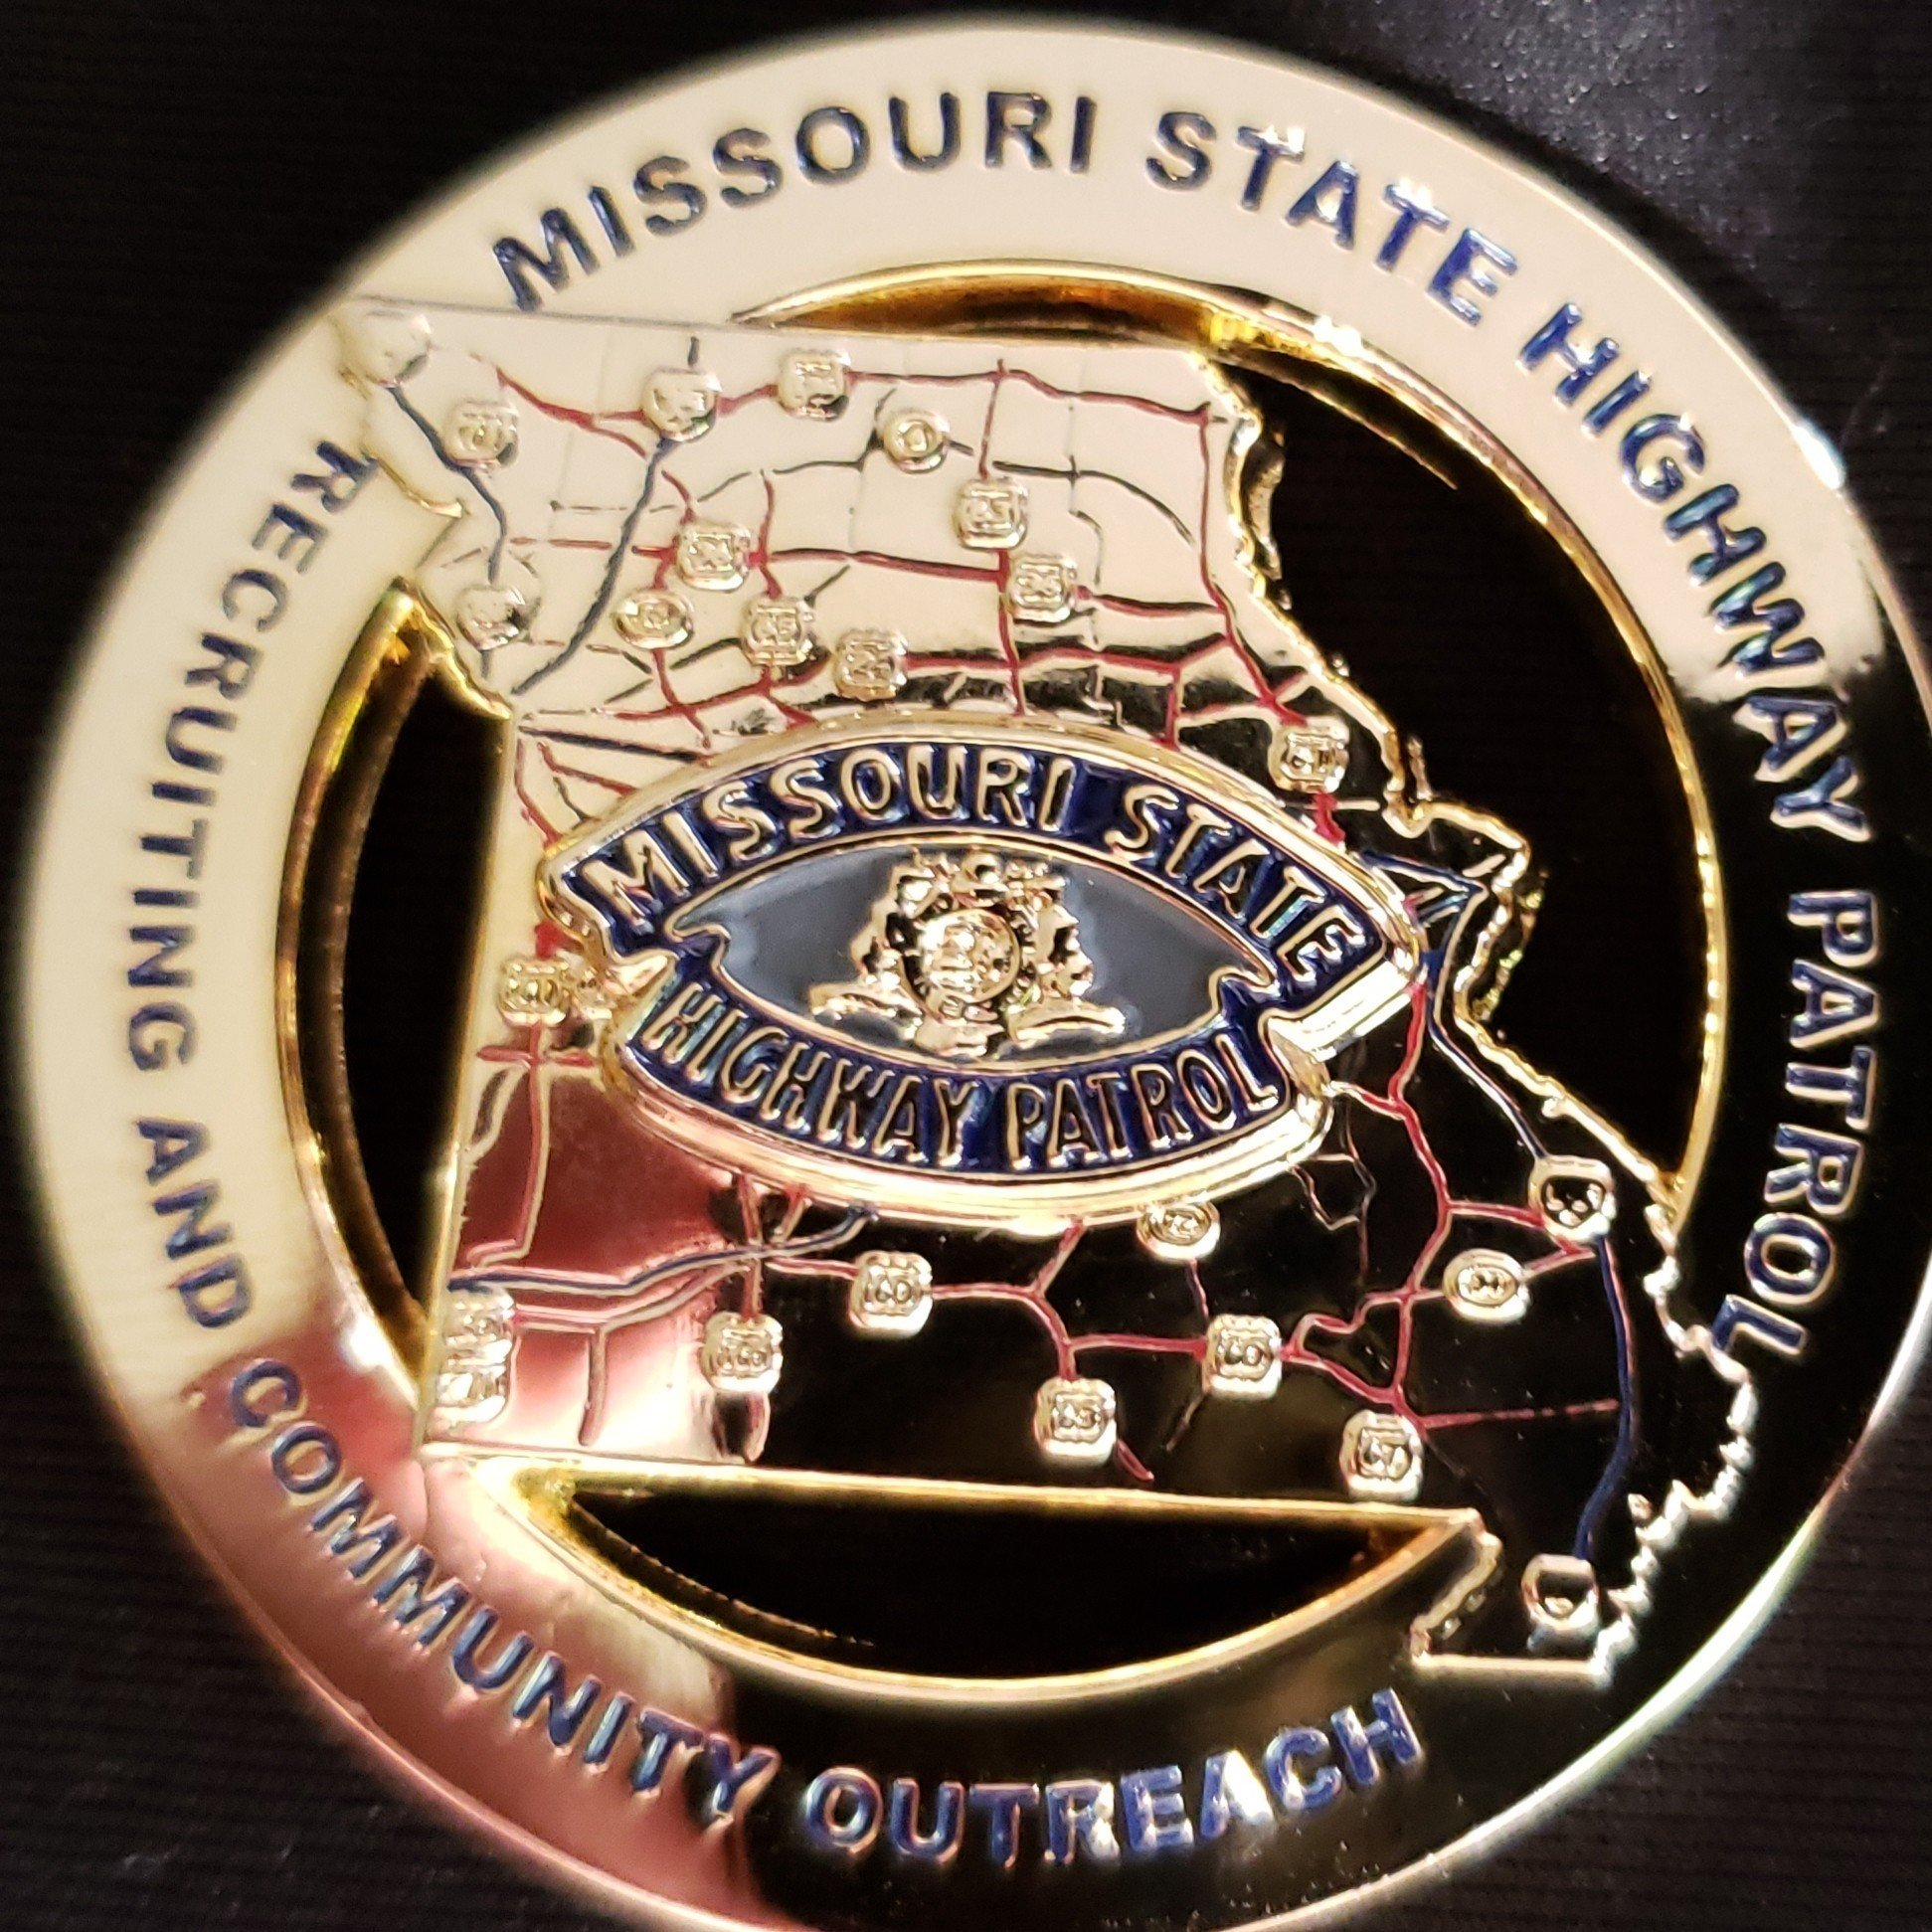 Missouri State Highway Patrol Recruiting and Community Outreach Custom  Challenge Coin - Phoenix Challenge Coins